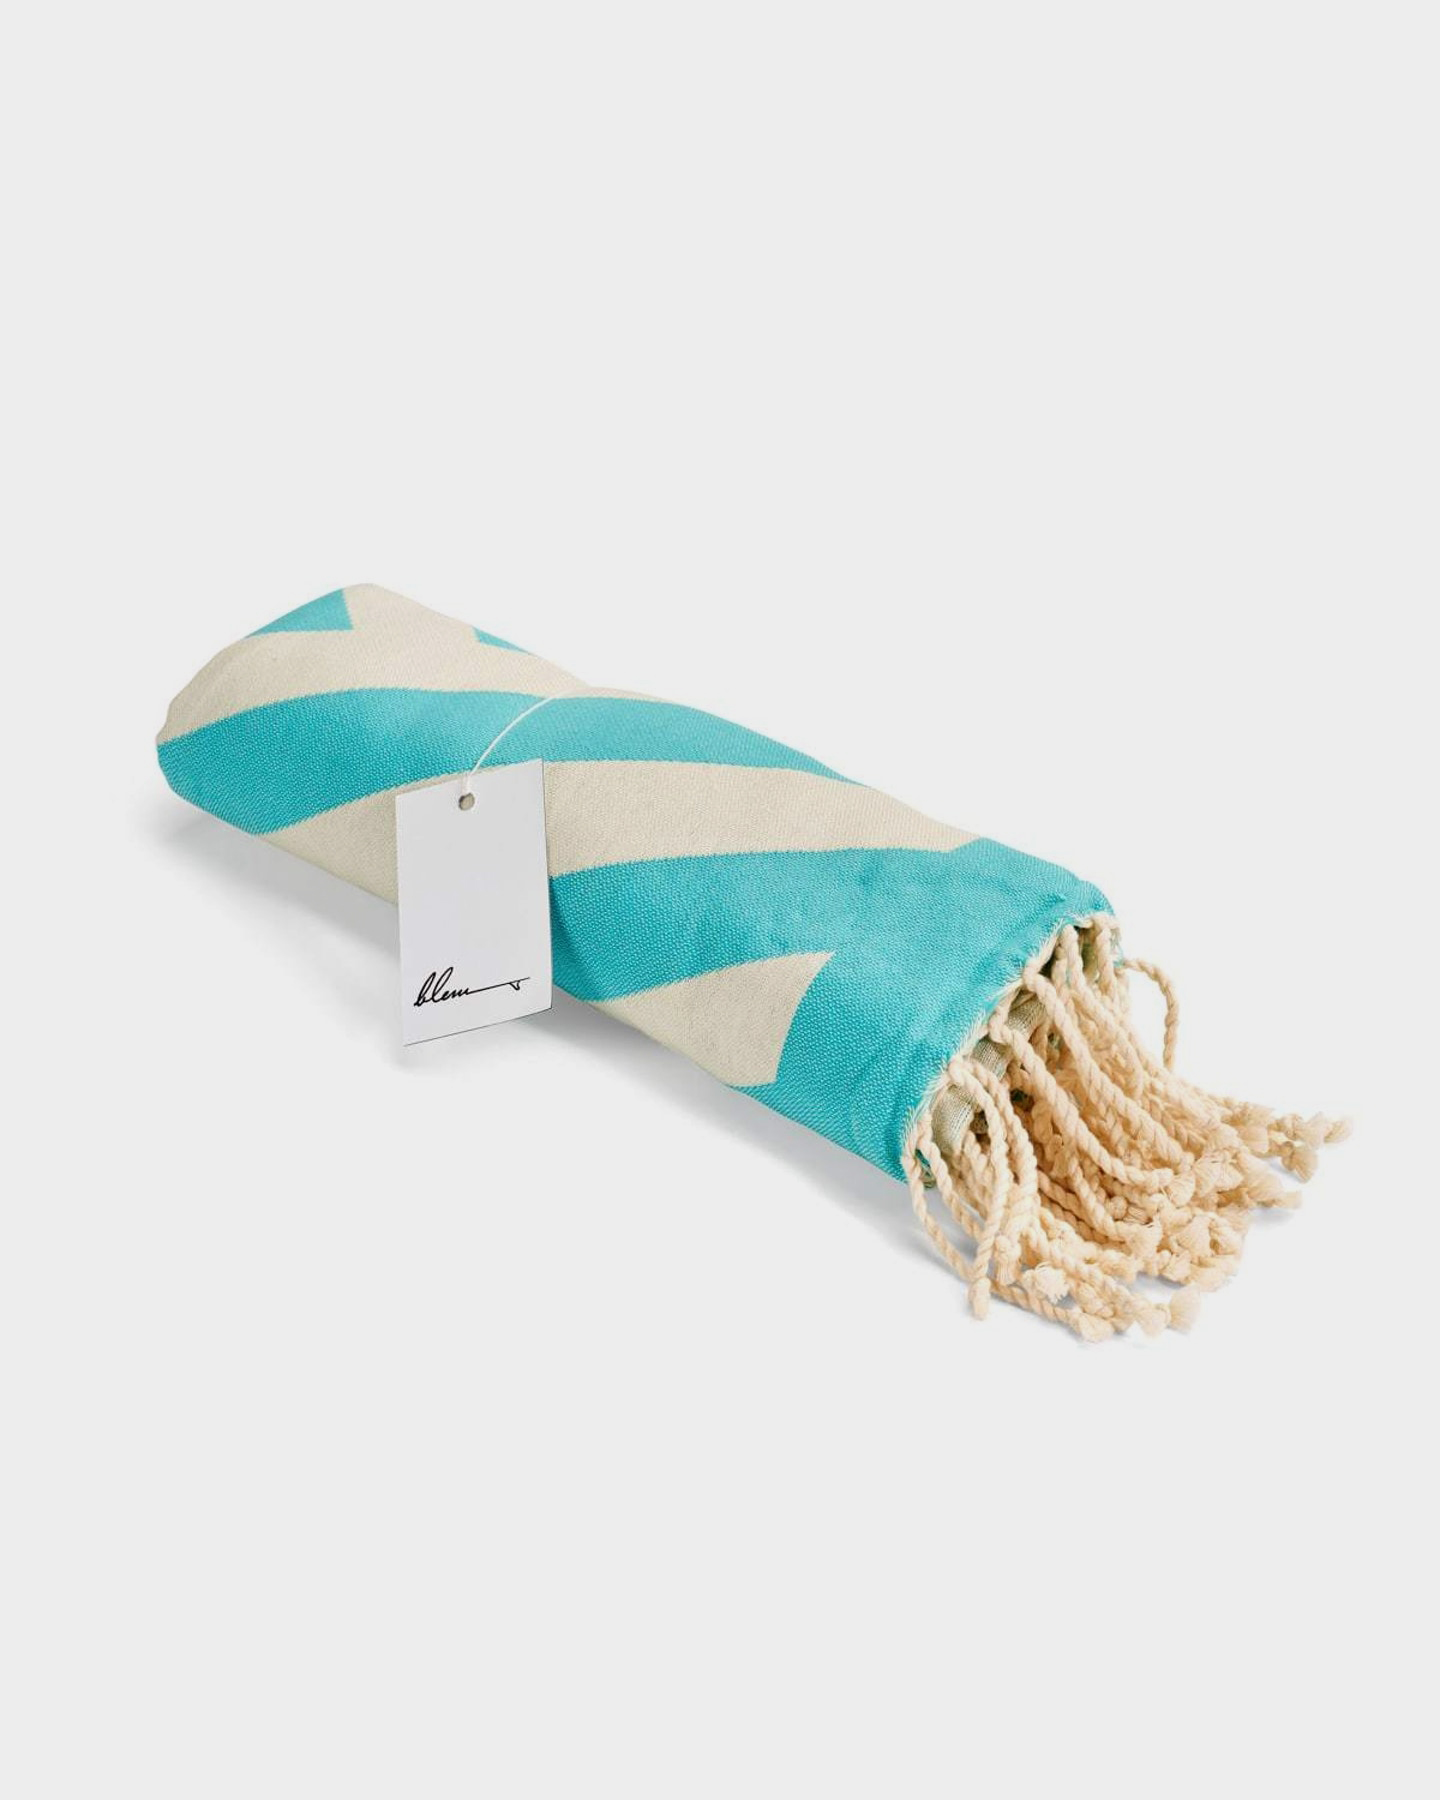 Blem Beach Accessories Zig Zag Turquoise Jackie Collection Towel Turquoise Turquoise